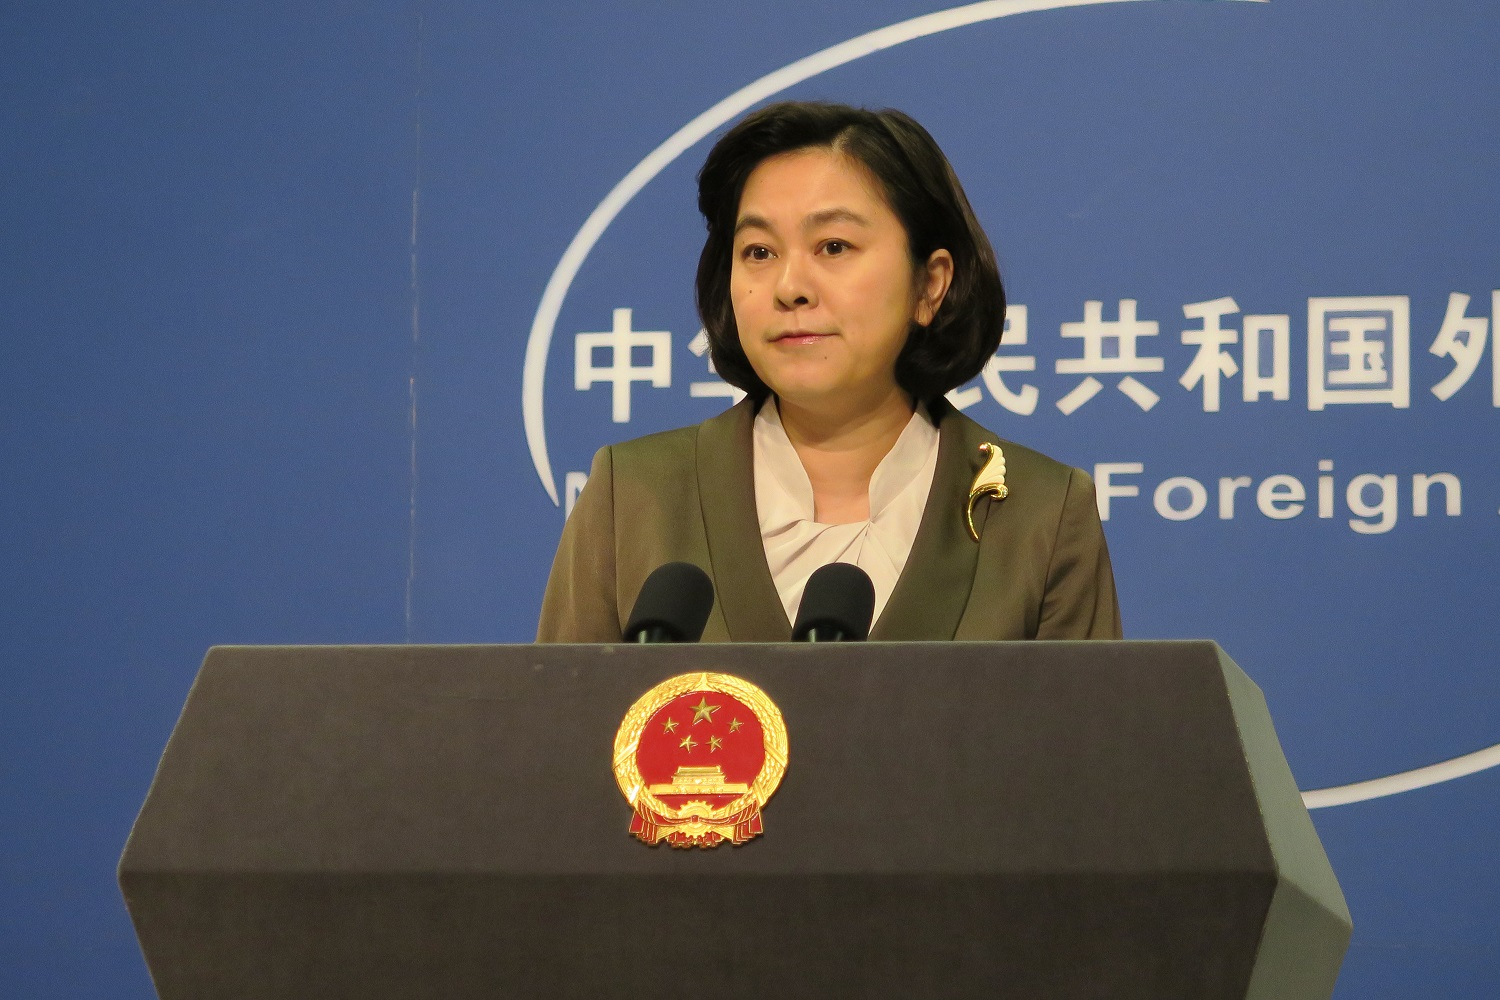 Chinese Foreign Ministry Spokeswoman Hua Chunying at press briefing.